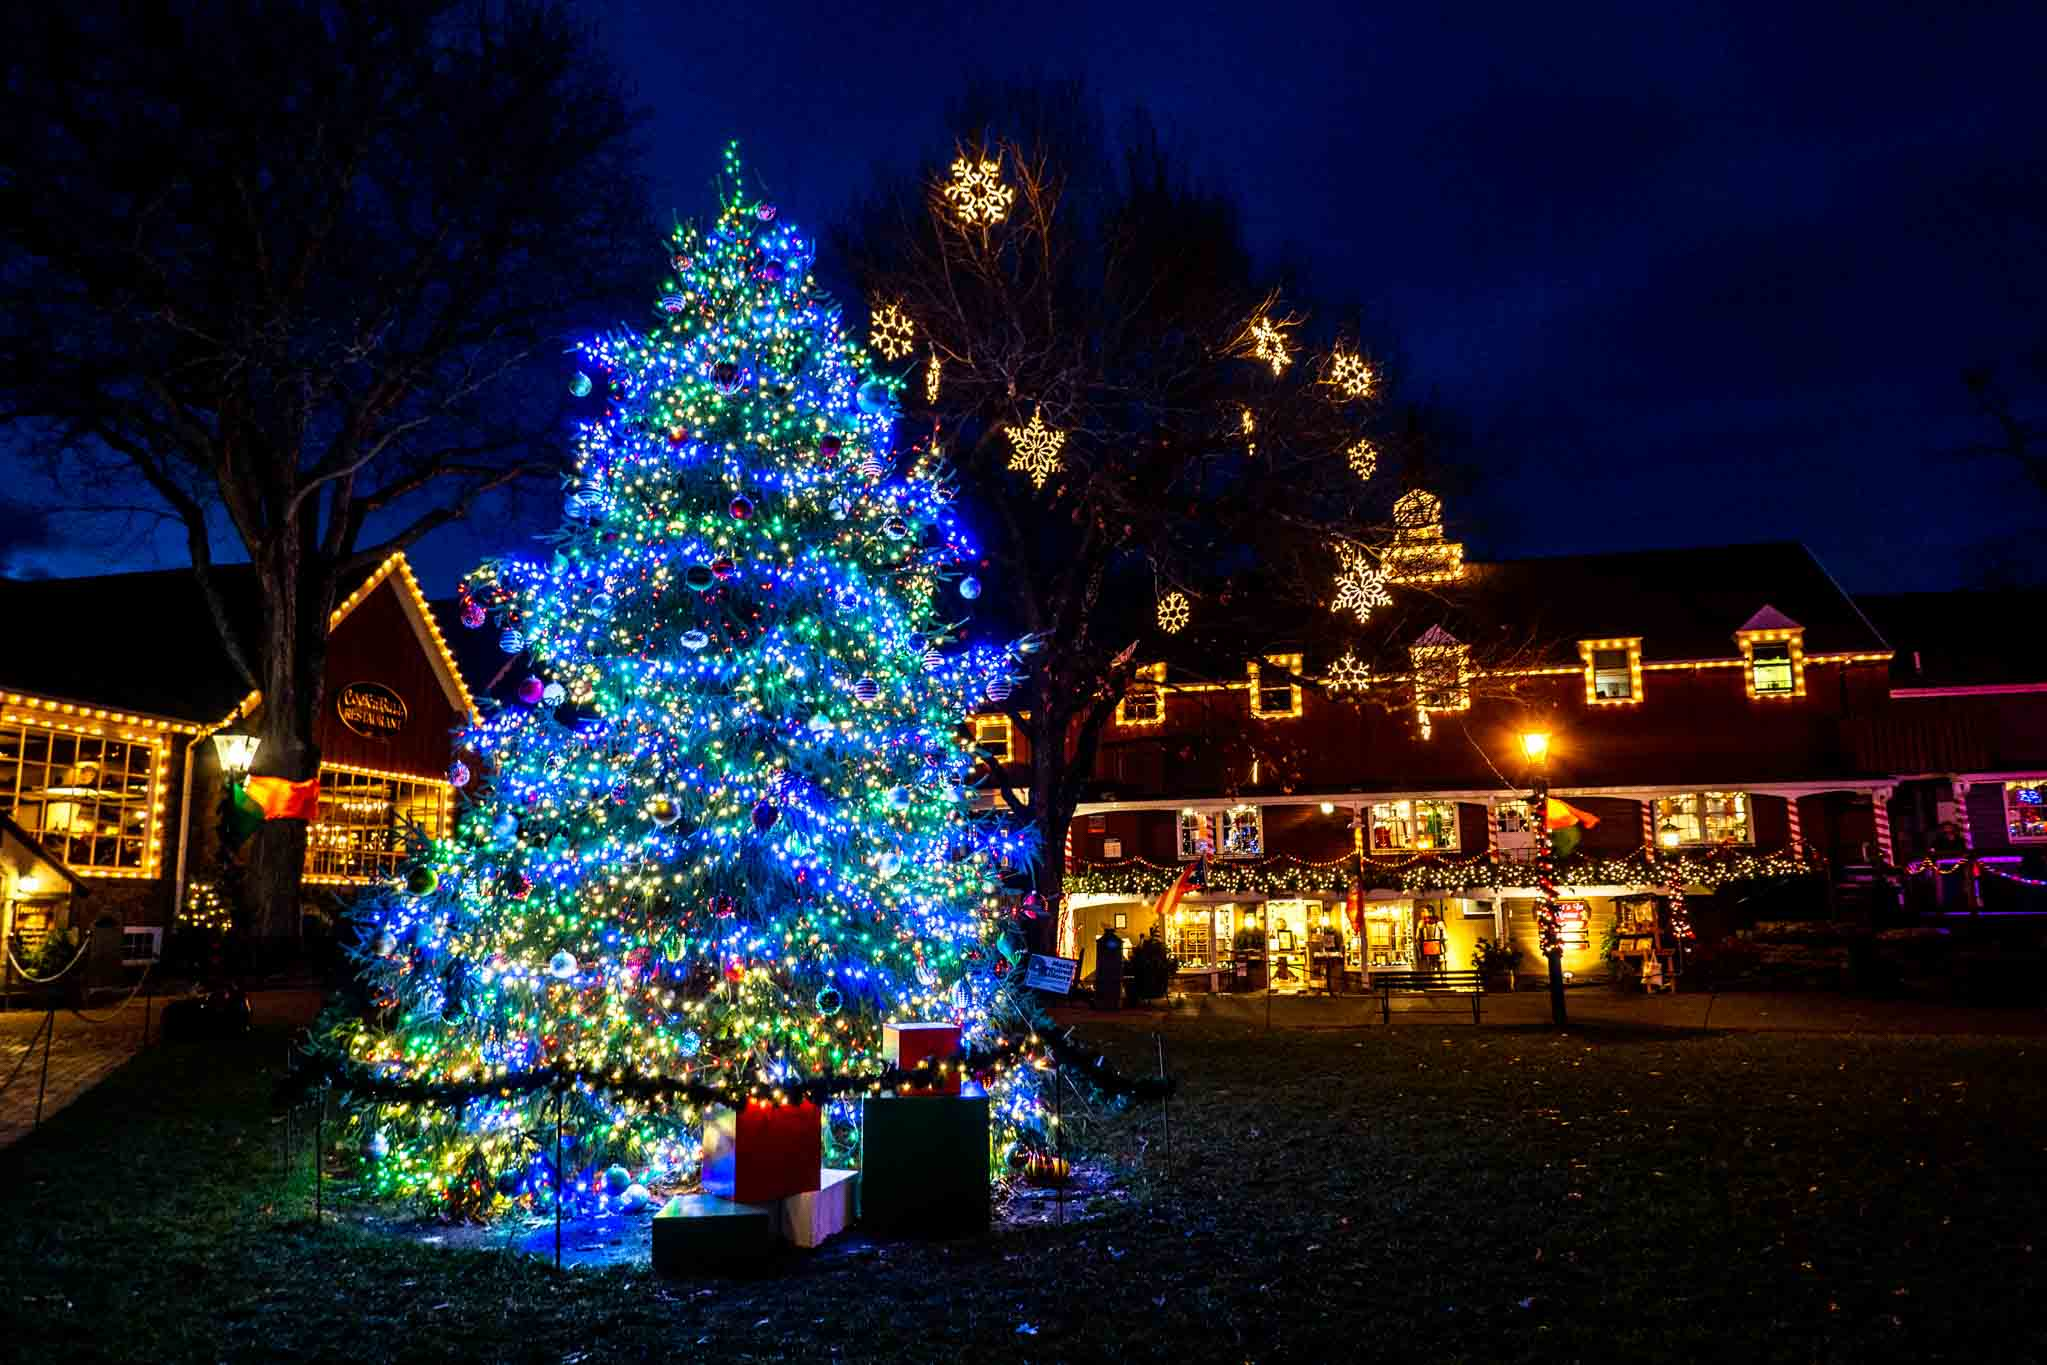 Christmas tree and building decorated with lights